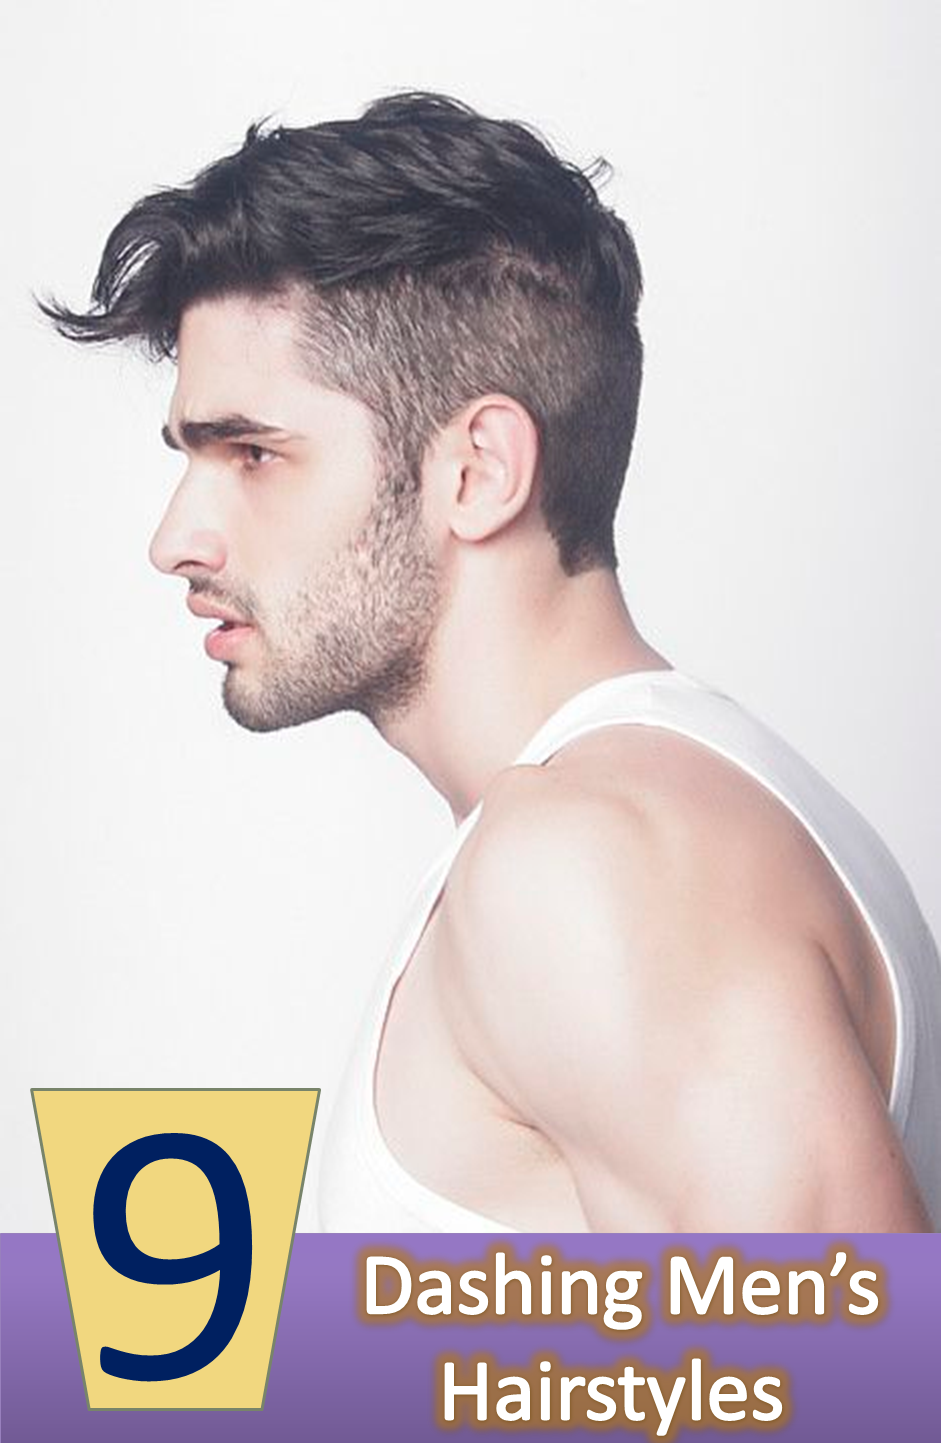 9 dashing men's hairstyles 2018 | hair type, hair style and haircuts